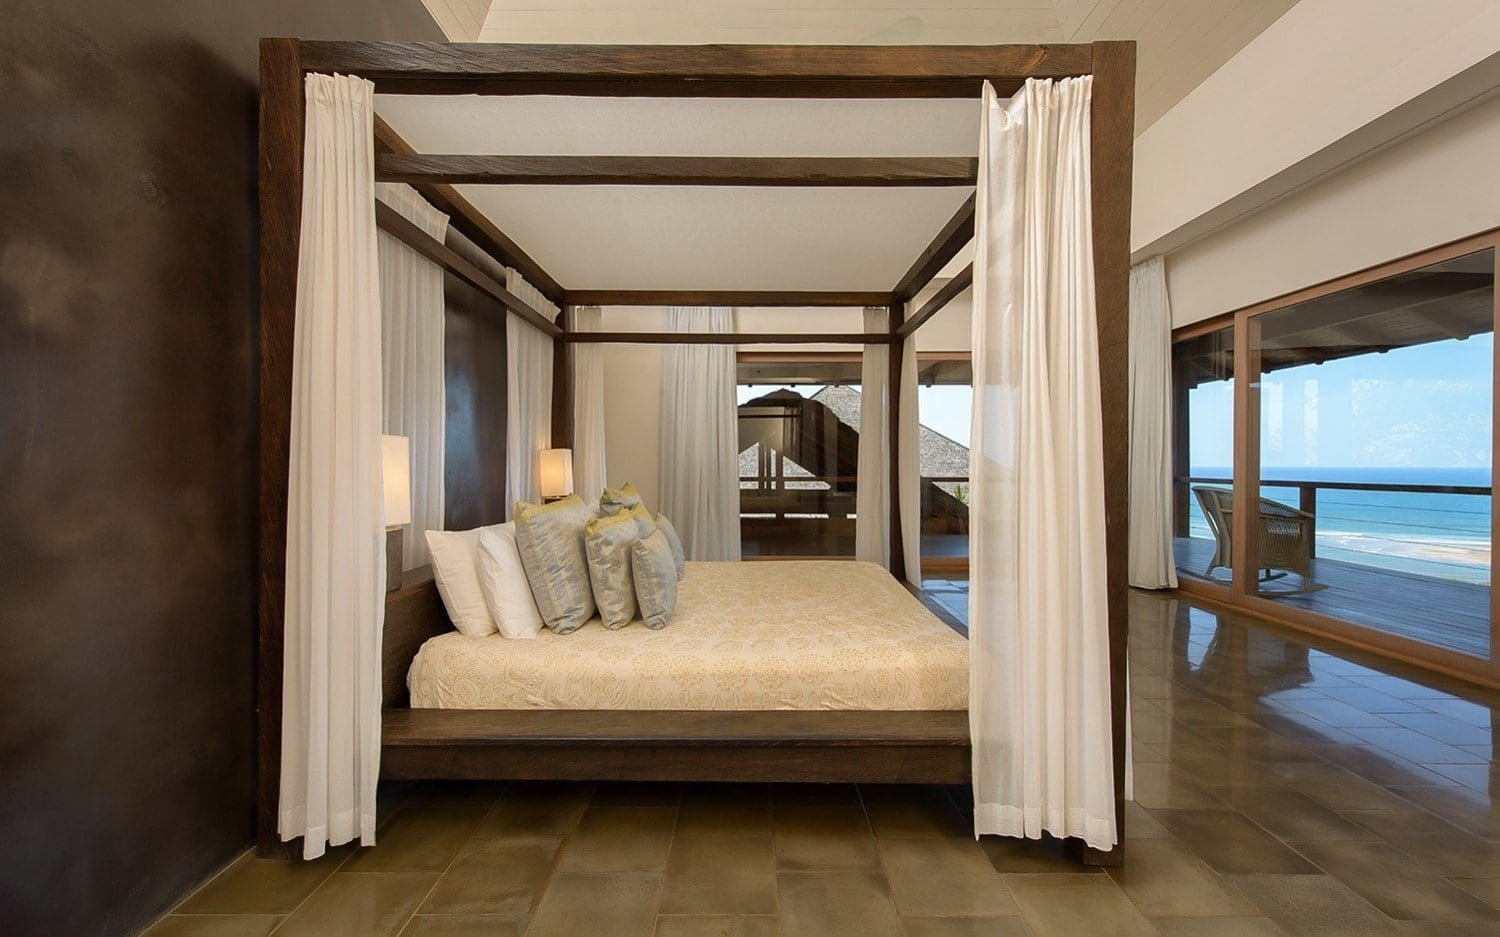 Canopy bed in master suite for newlyweds at Casa Alang Alang, Tamarindo.